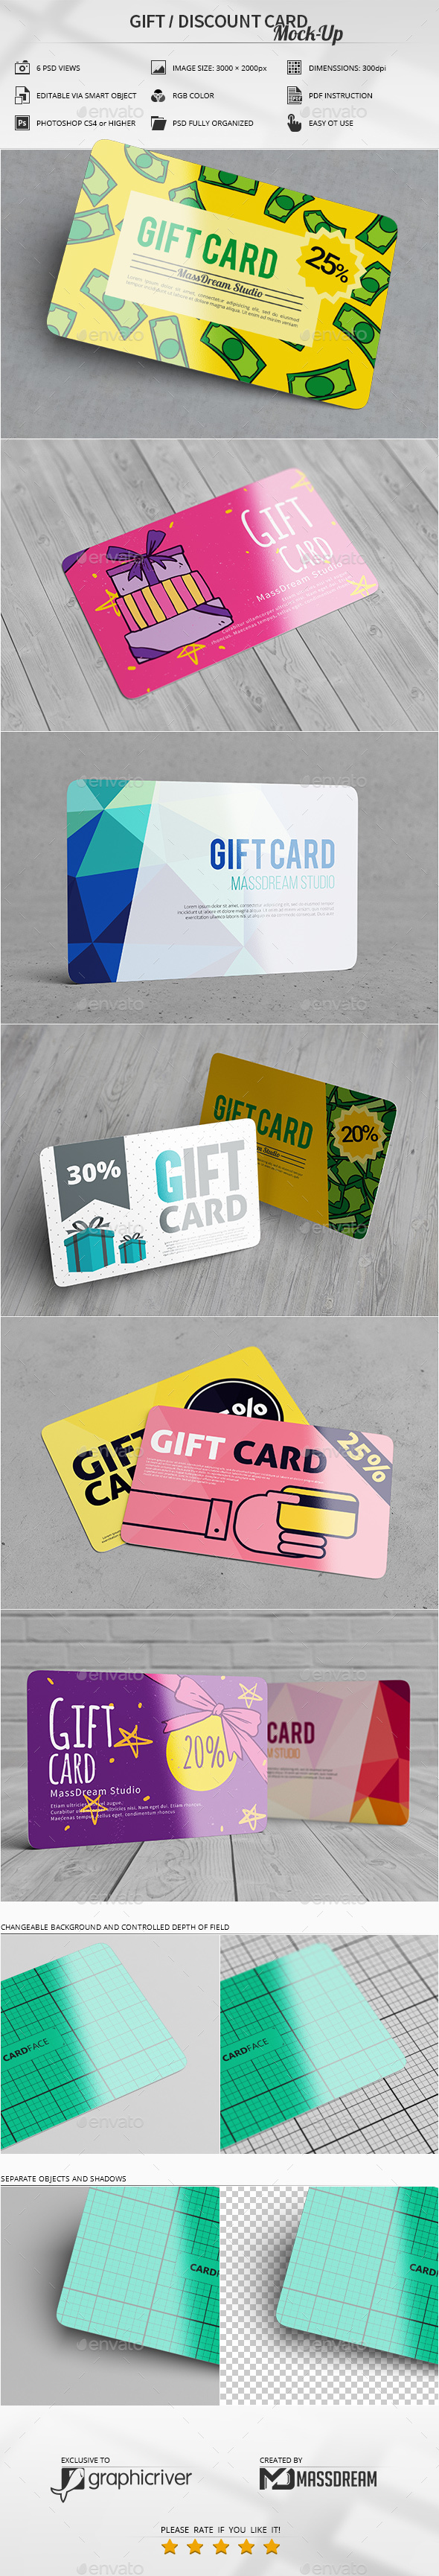 Gift / Discount Card Mock-Up - Business Cards Print